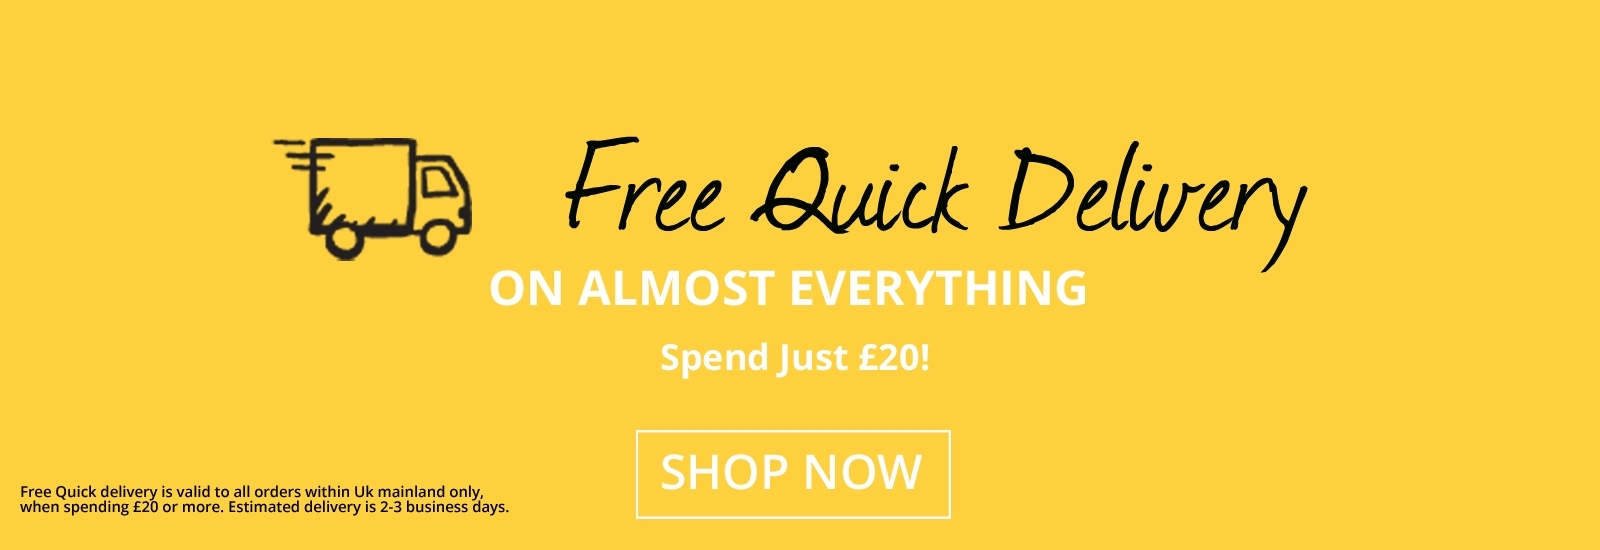 FREE QUICK DELIVERY OVER £20!